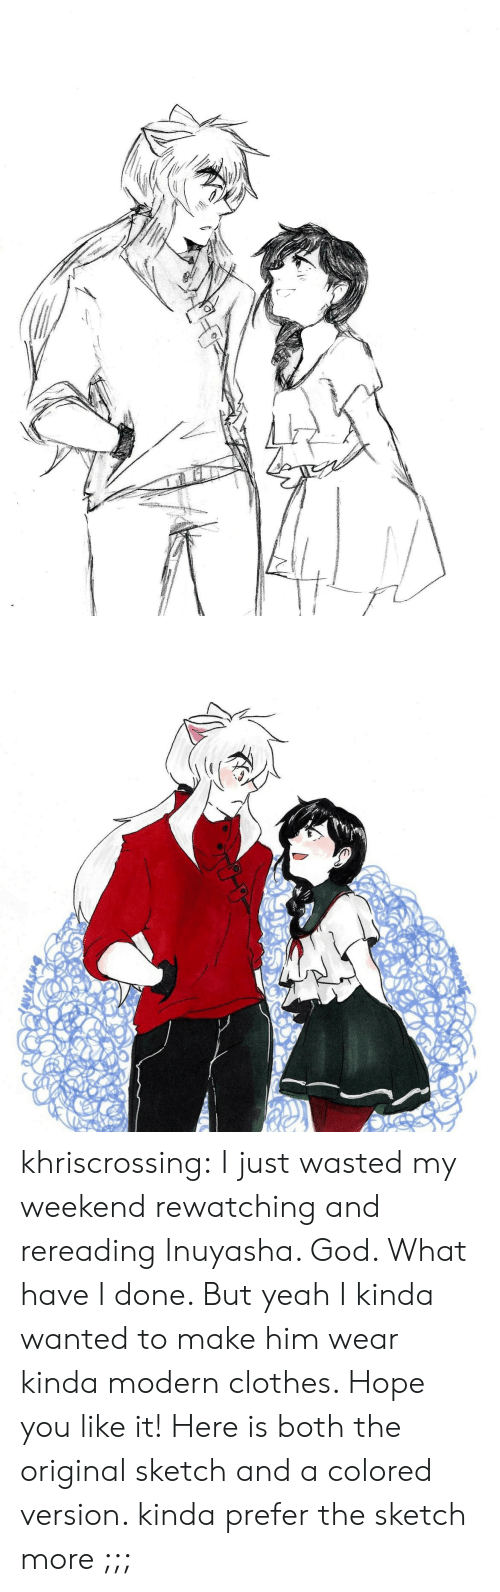 Clothes, God, and Target: khriscrossing:  I just wasted my weekend rewatching and rereading Inuyasha. God. What have I done. But yeah I kinda wanted to make him wear kinda modern clothes. Hope you like it! Here is both the original sketch and a colored version. kinda prefer the sketch more ;;;